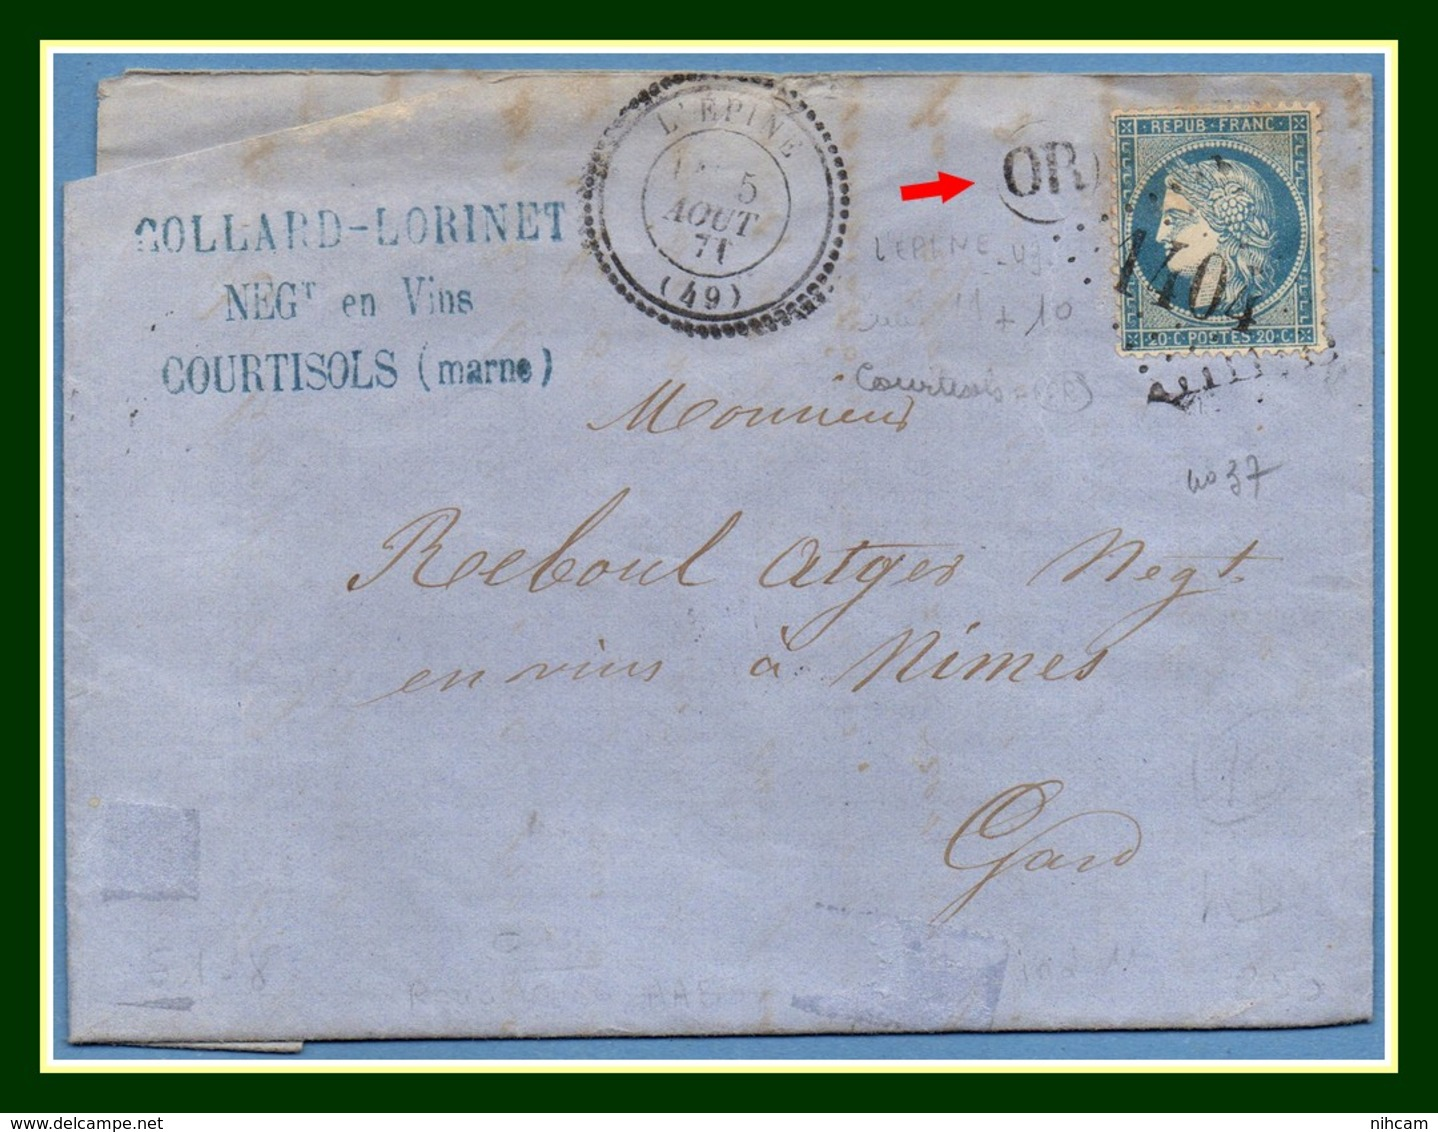 GC 1404 / N° 37 Type 24 L' Epine (49) 1871 + OR Courtisols > Nîmes T17 + Amb J+N (ind 11) - Postmark Collection (Covers)